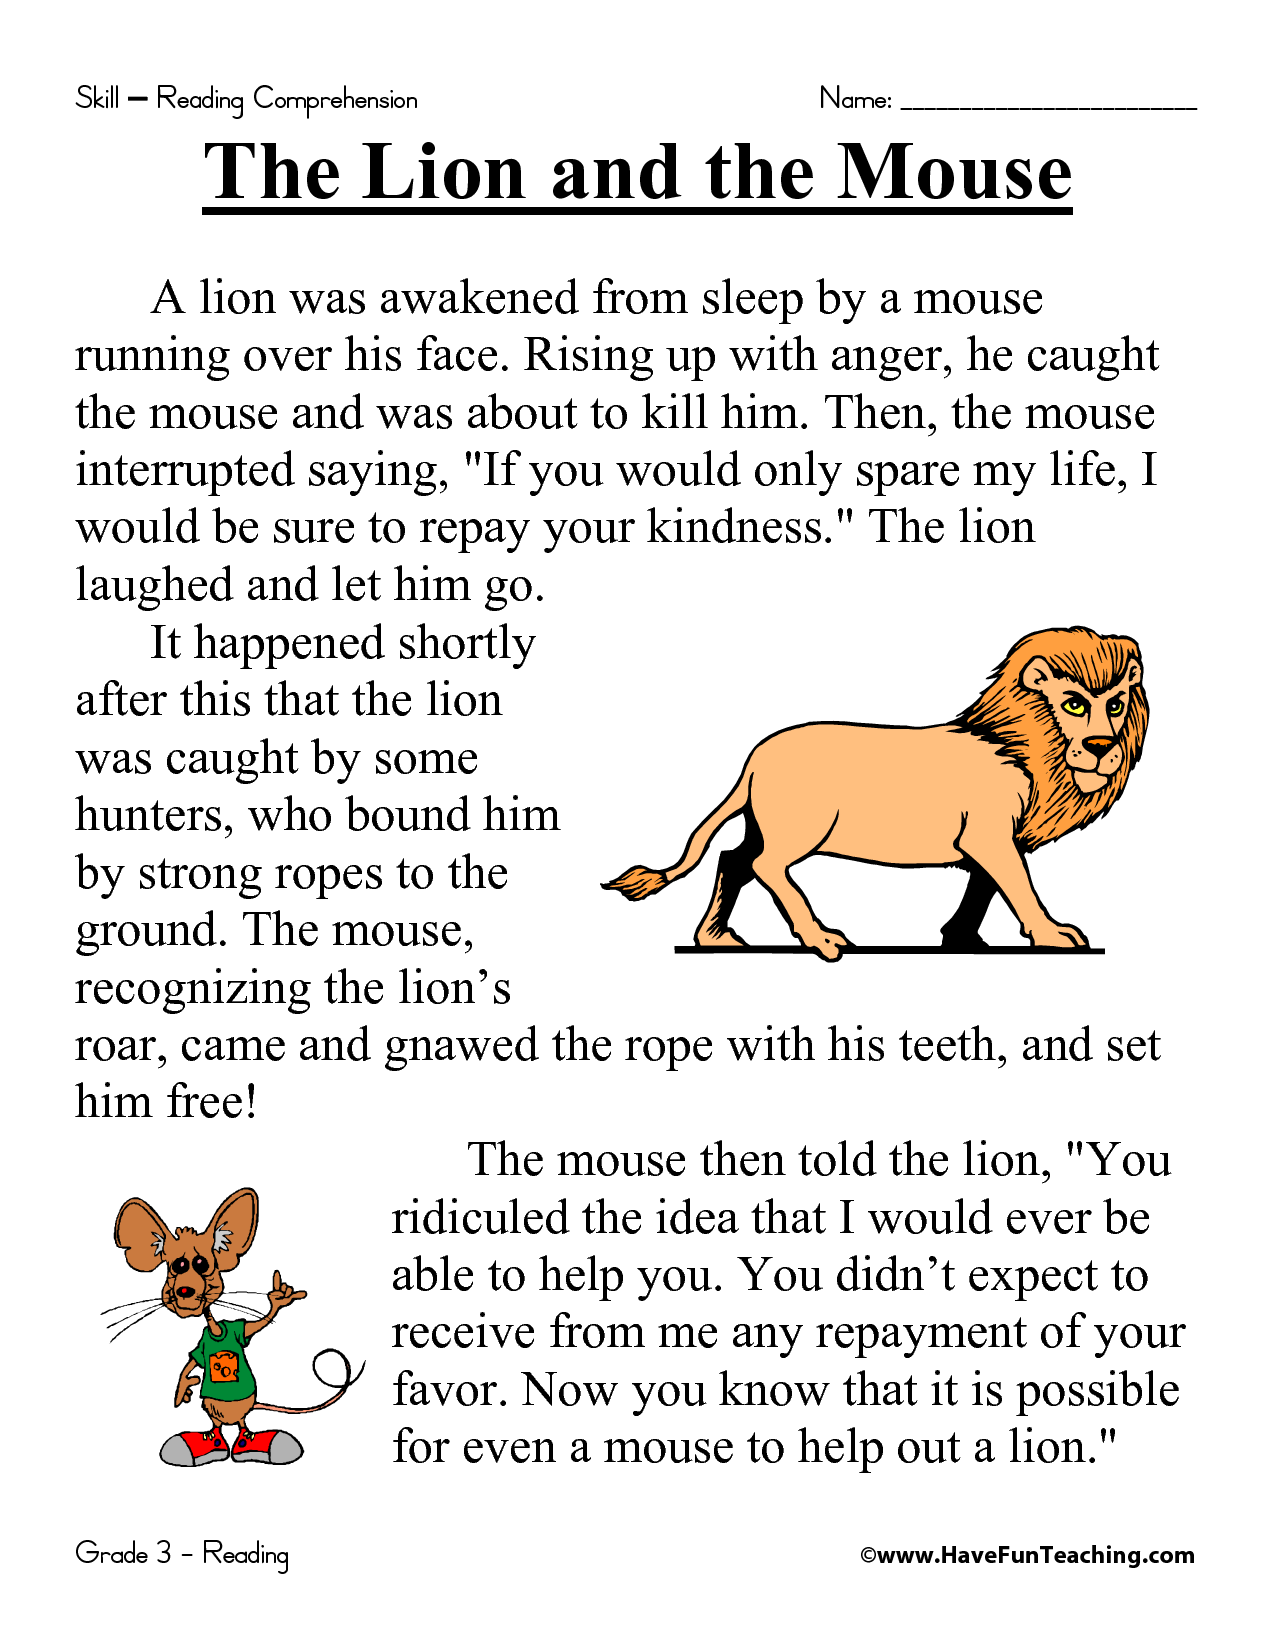 Free Worksheet Free Printable High School Reading Comprehension Worksheets printable reading comprehension worksheets inc exercises for first grade the lion and mouse worksheet